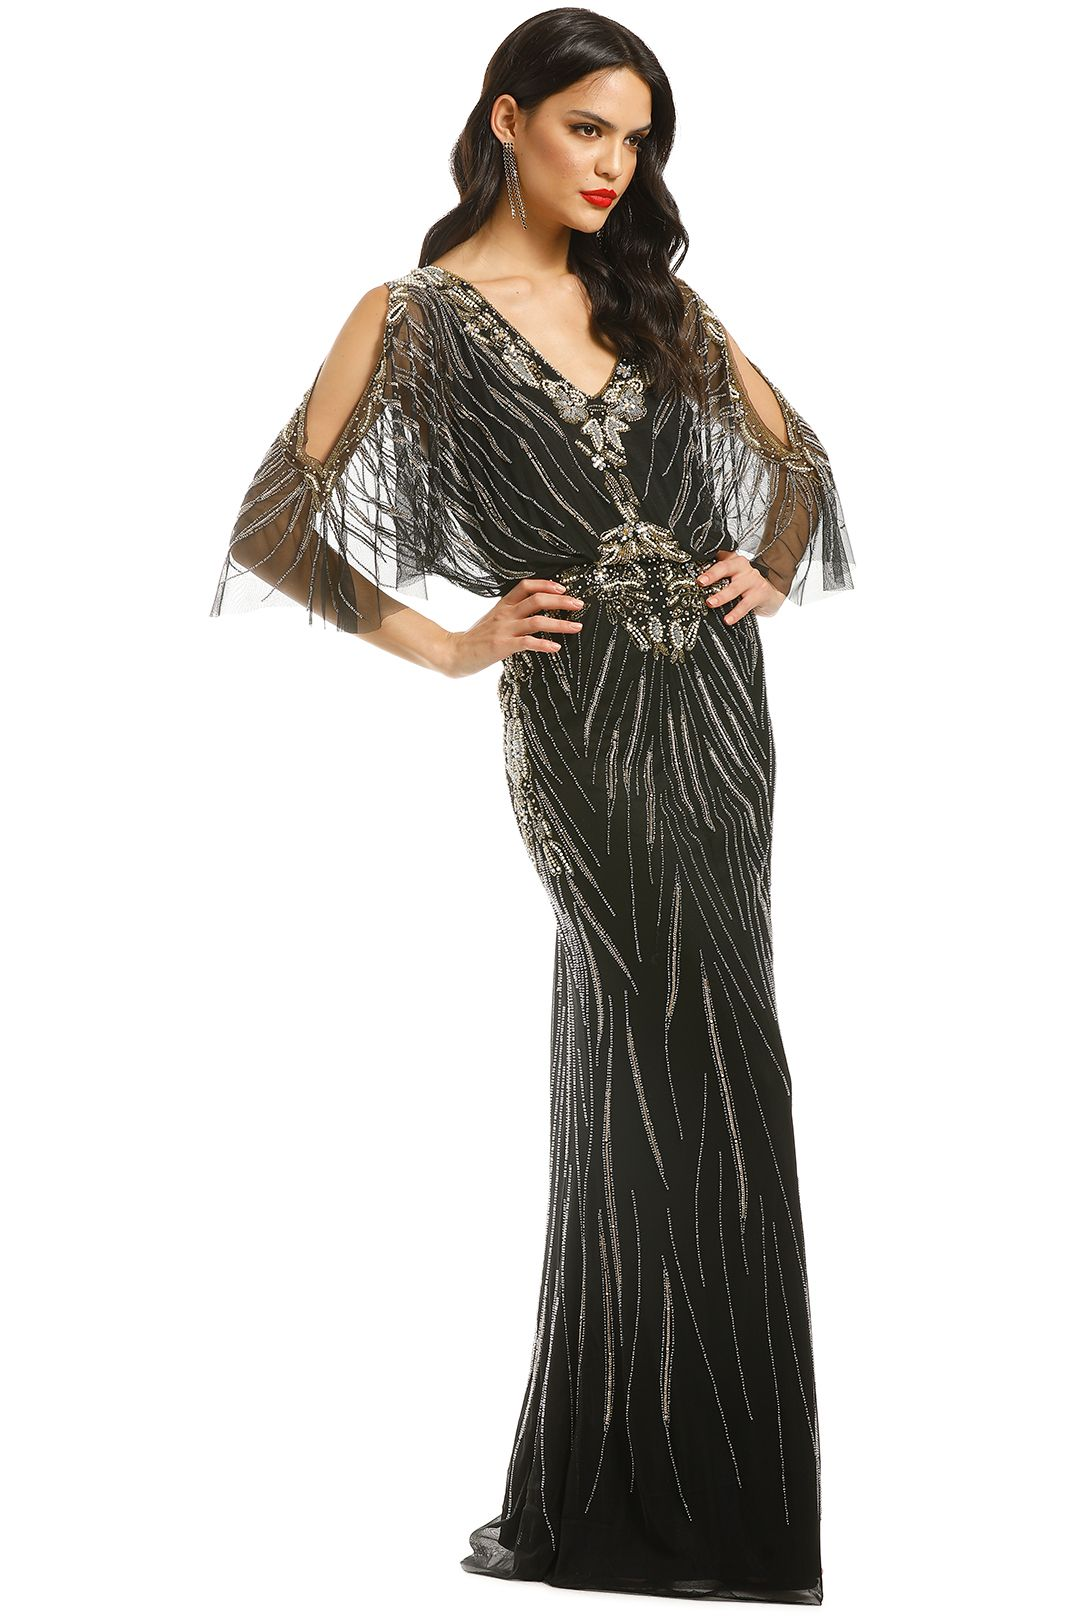 Grace-and-Blaze-Opera-Gown-Black-Side